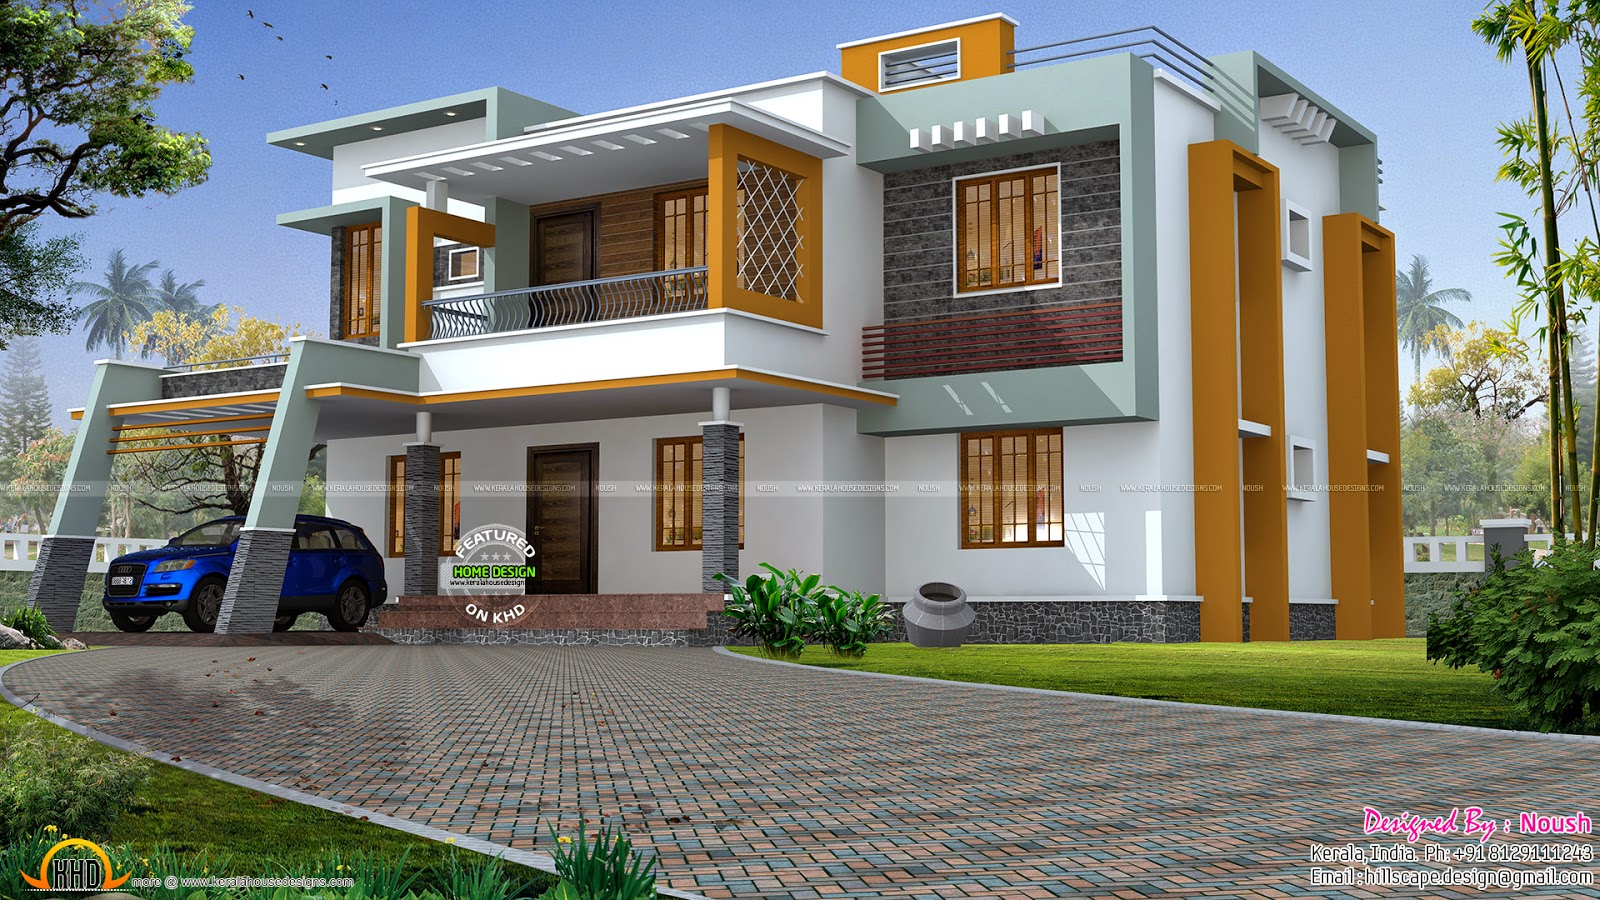 Box style house kerala home design and floor plans for New house plans